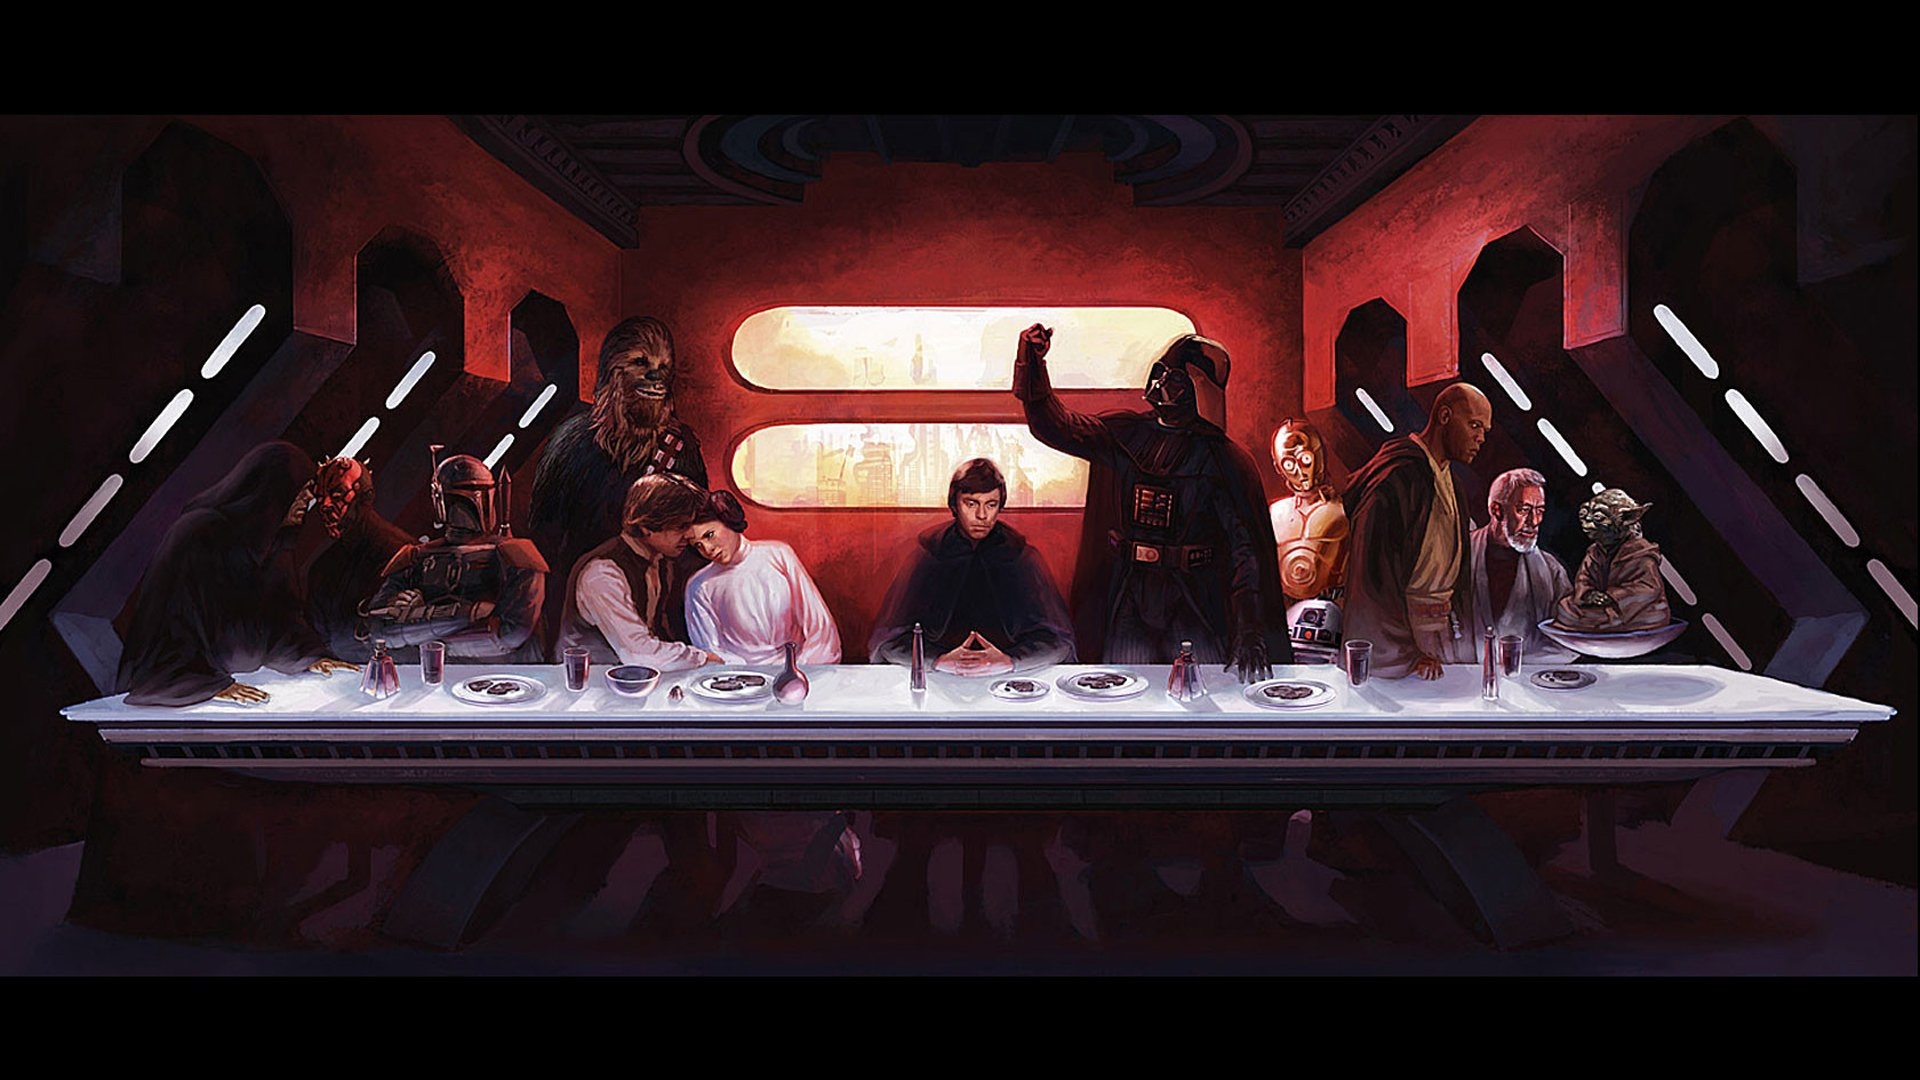 Sci Fi - Star Wars  The Last Supper Wallpaper